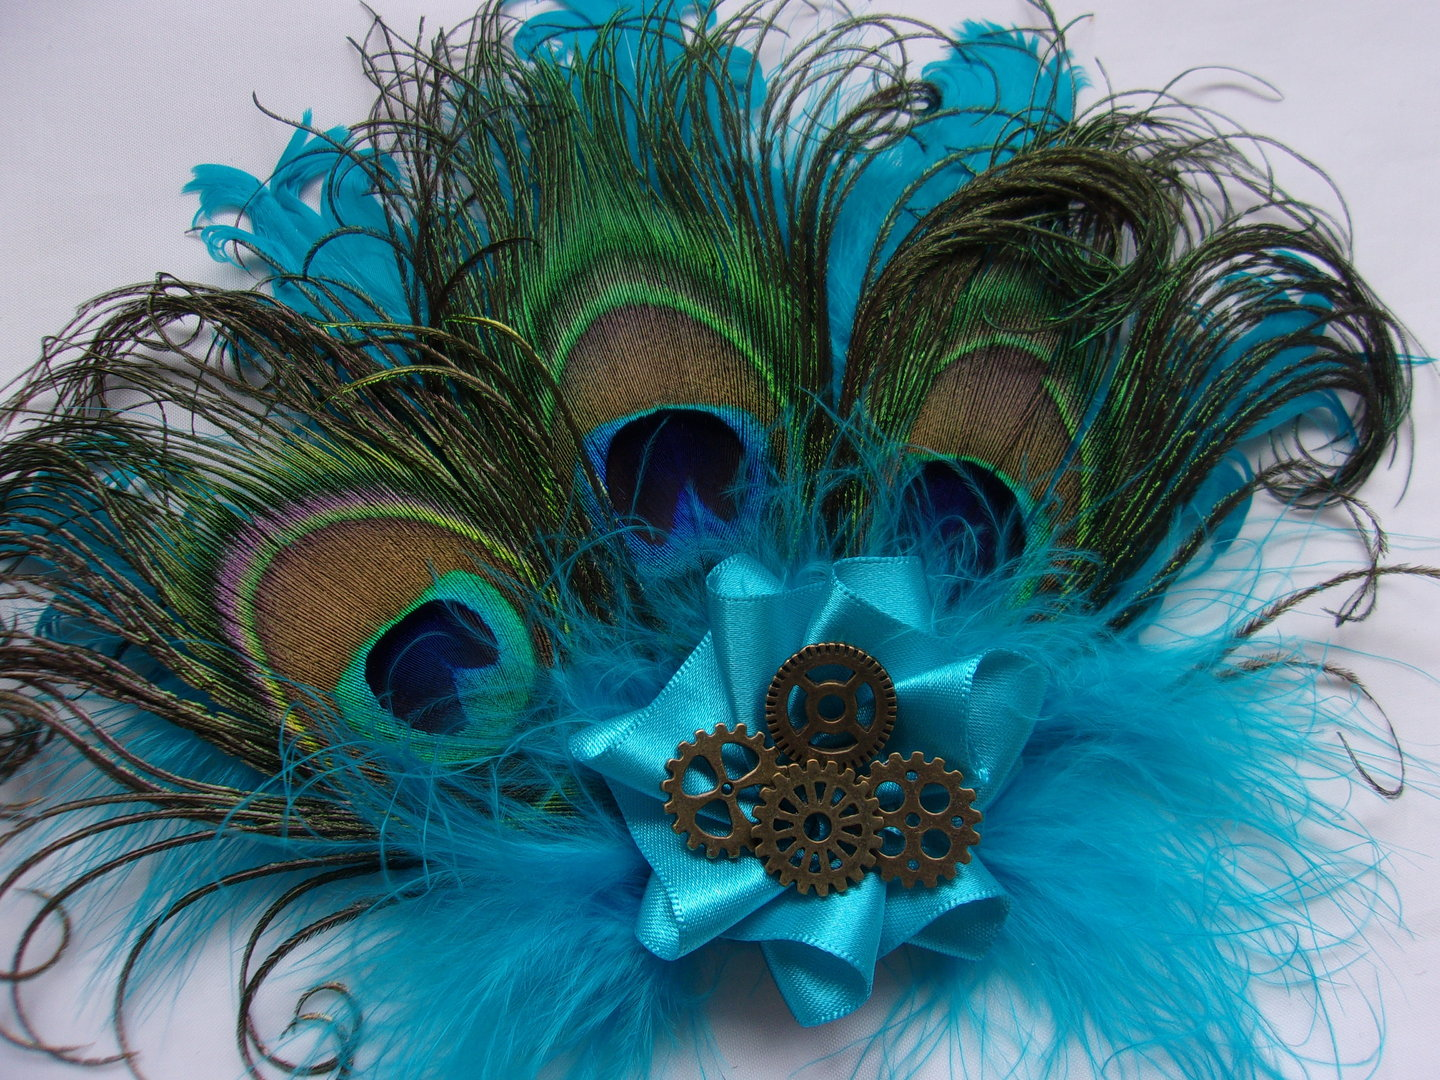 Turquoise Lagoon Azure Blue Peacock Feather Brass Cogs